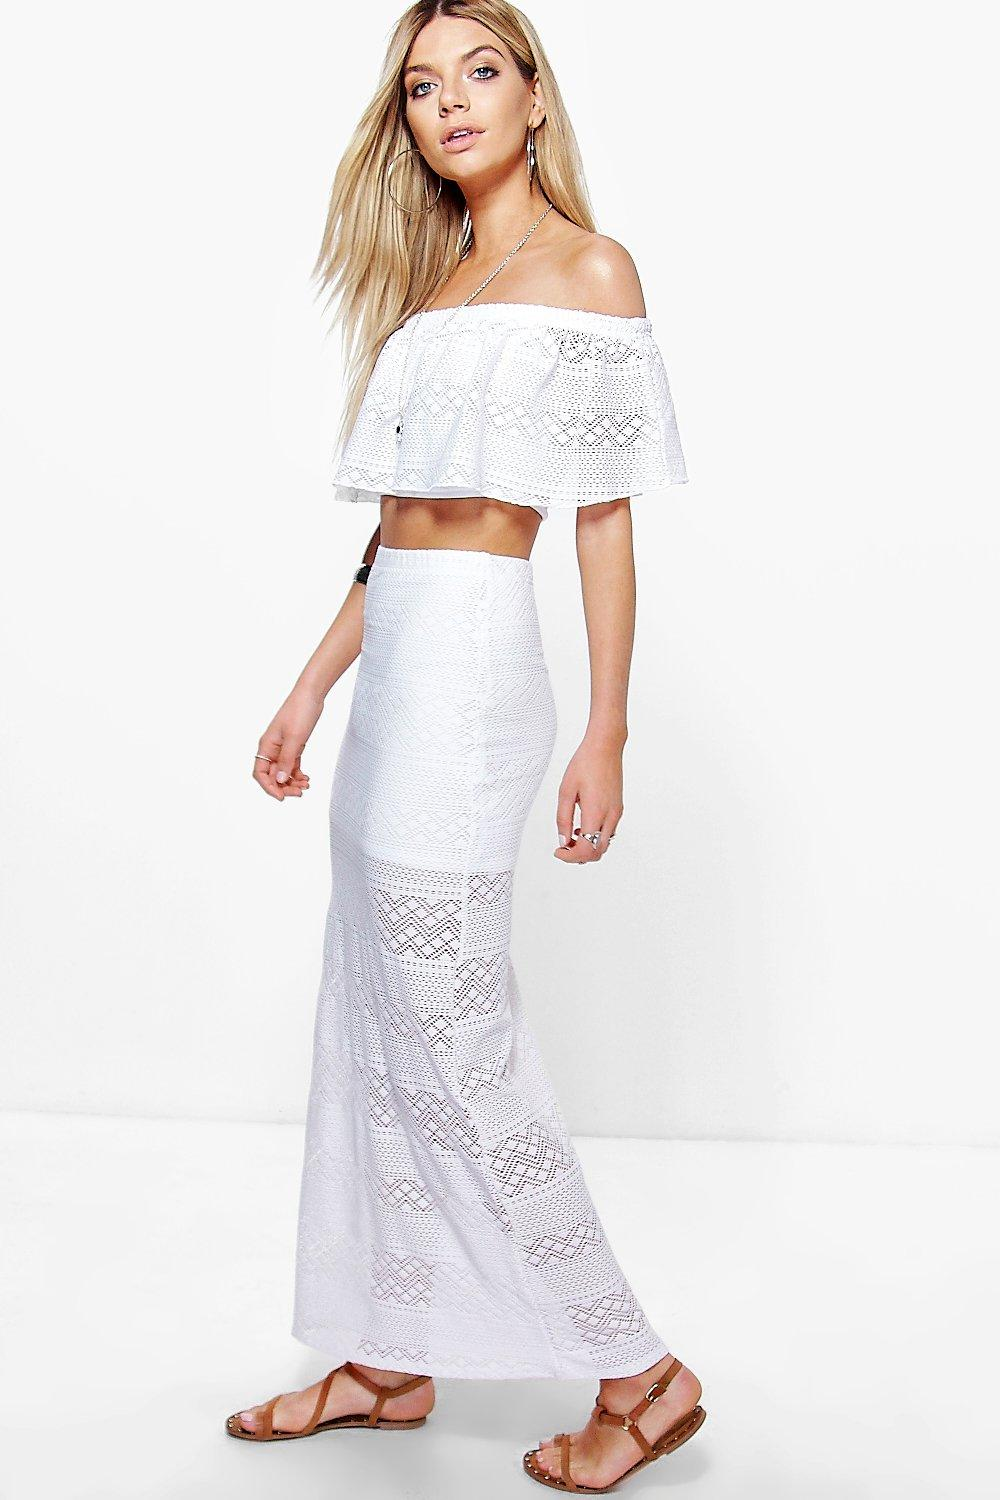 Elise Crochet Bandeau Top & Maxi Skirt Co-ord Set